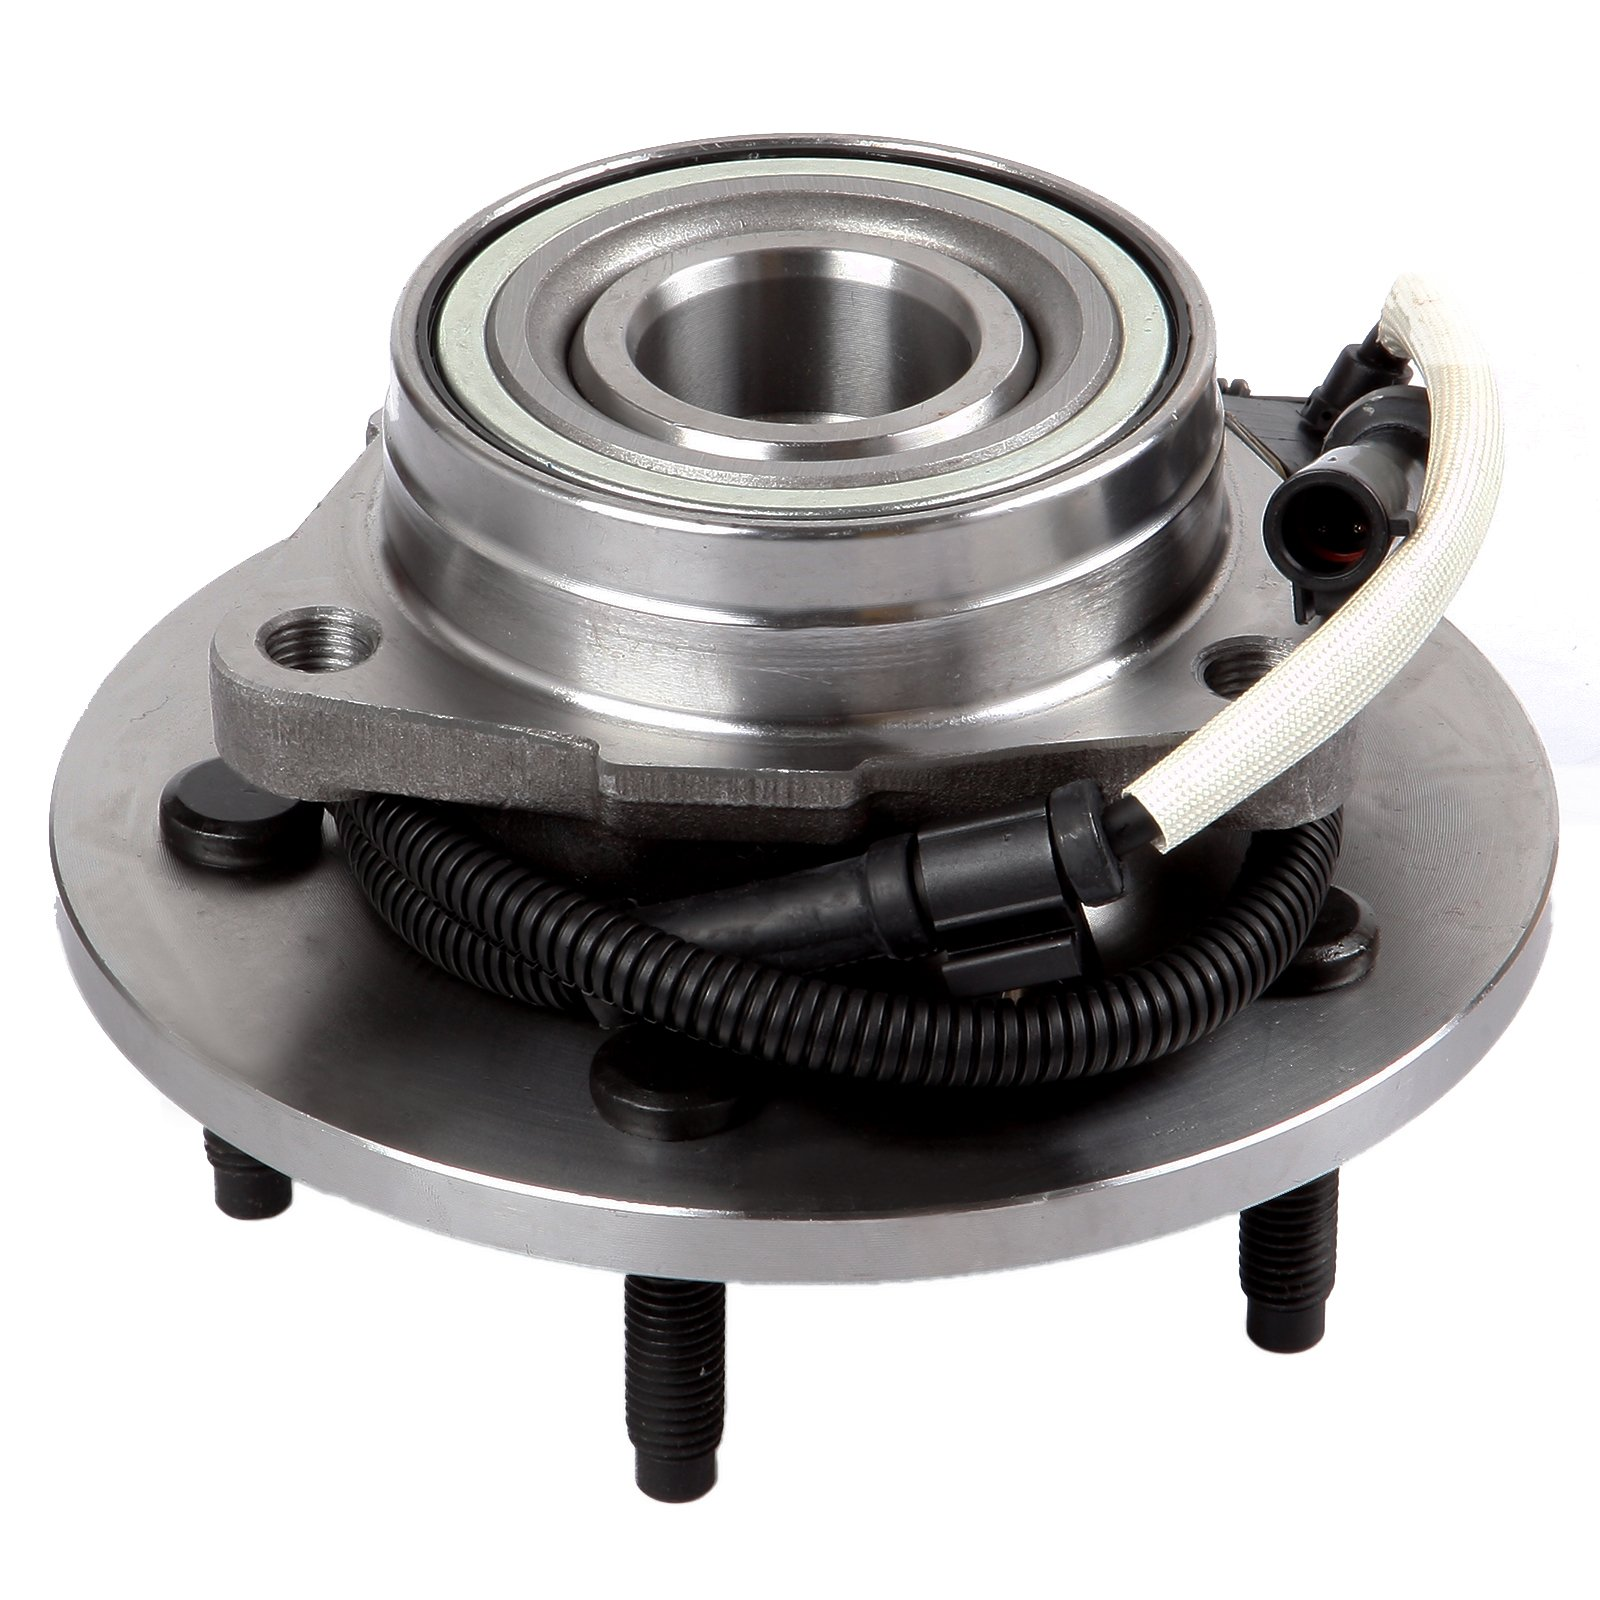 ECCPP Front Wheel Hub Bearing Assembly 5 Lugs w/ABS for 98-99 Ford Lincoln Compatible with 515004